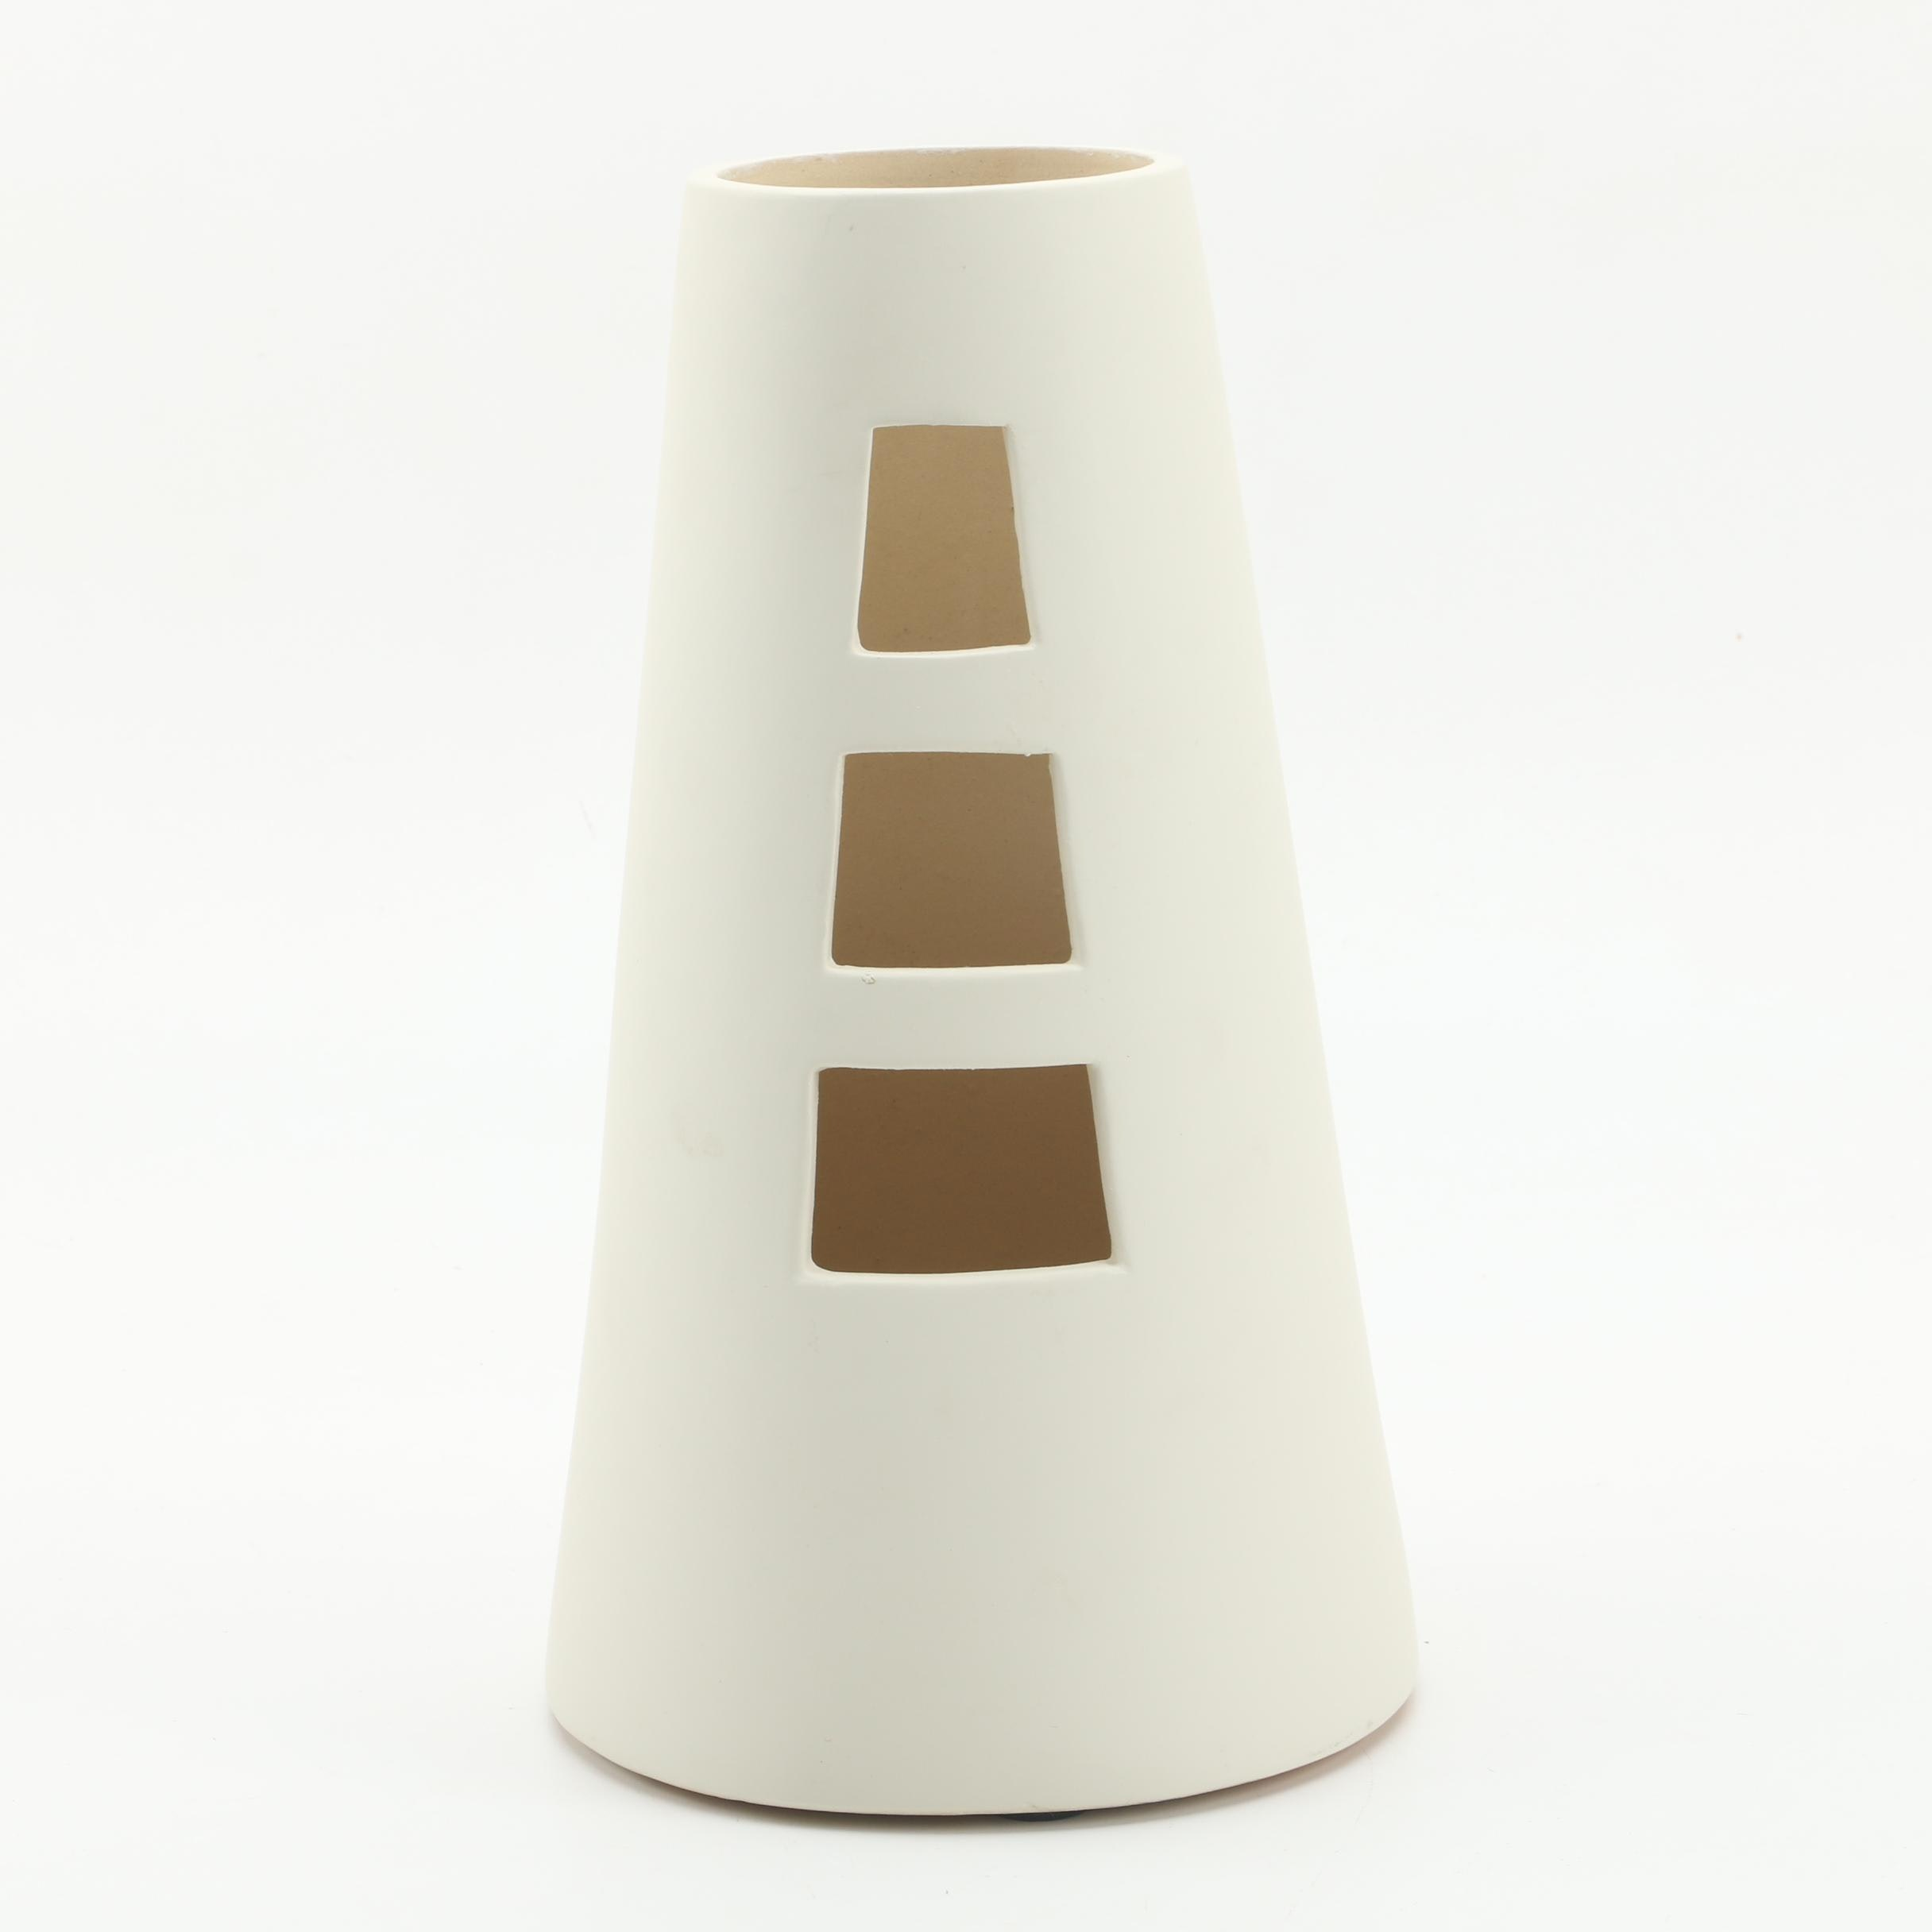 Chinese Modern Open Ceramic Vase from Global Views Inc.